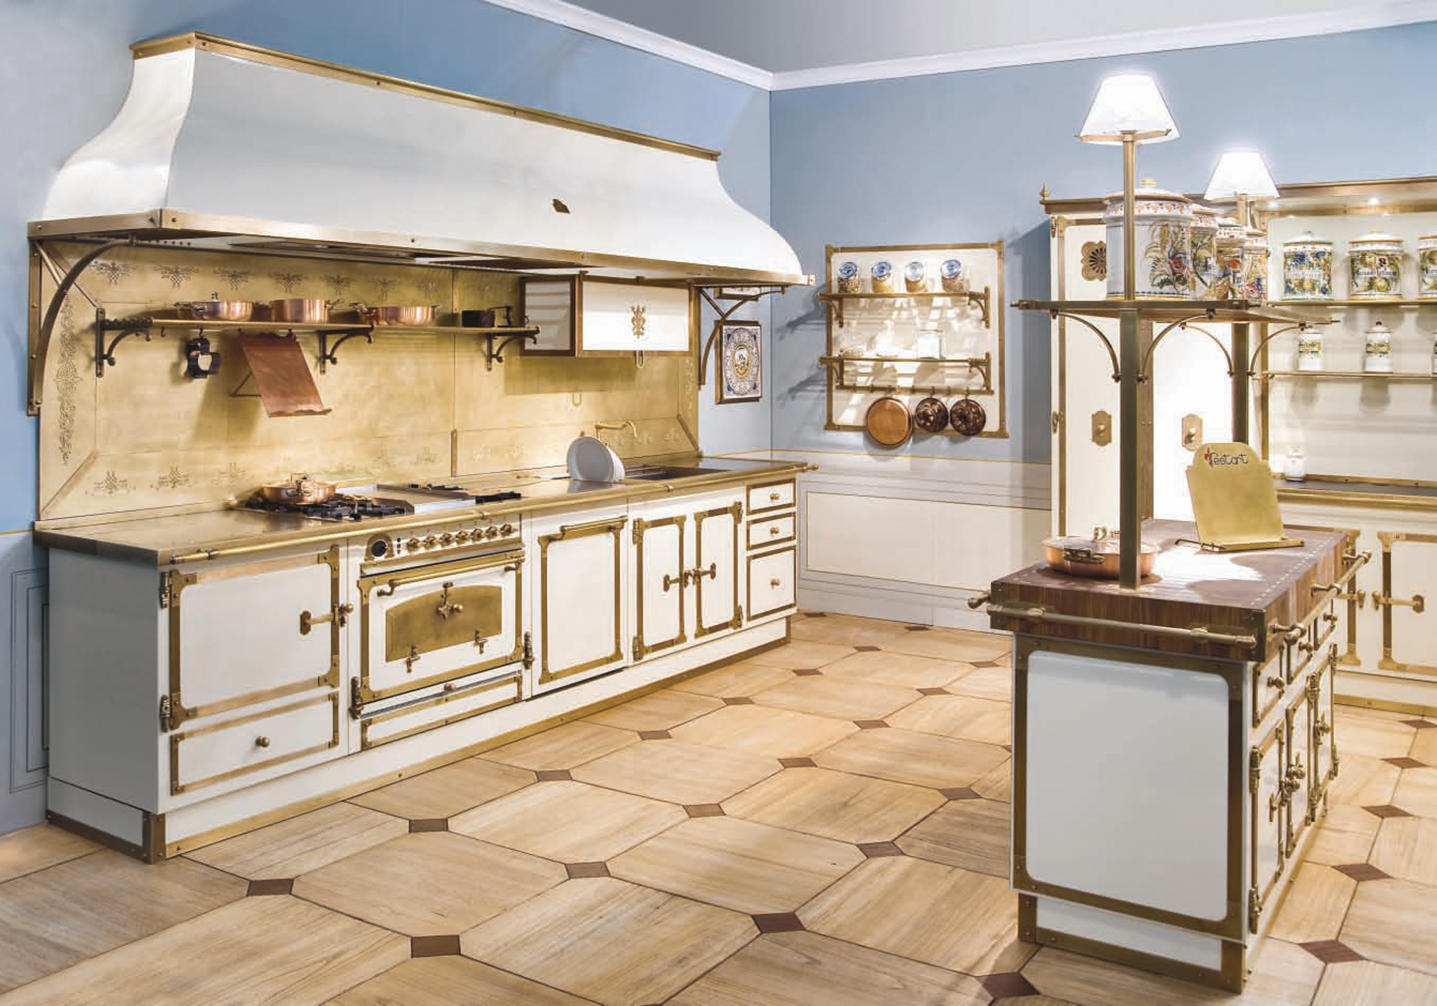 Guicciardini Palace Kitchen Fitted Kitchens From